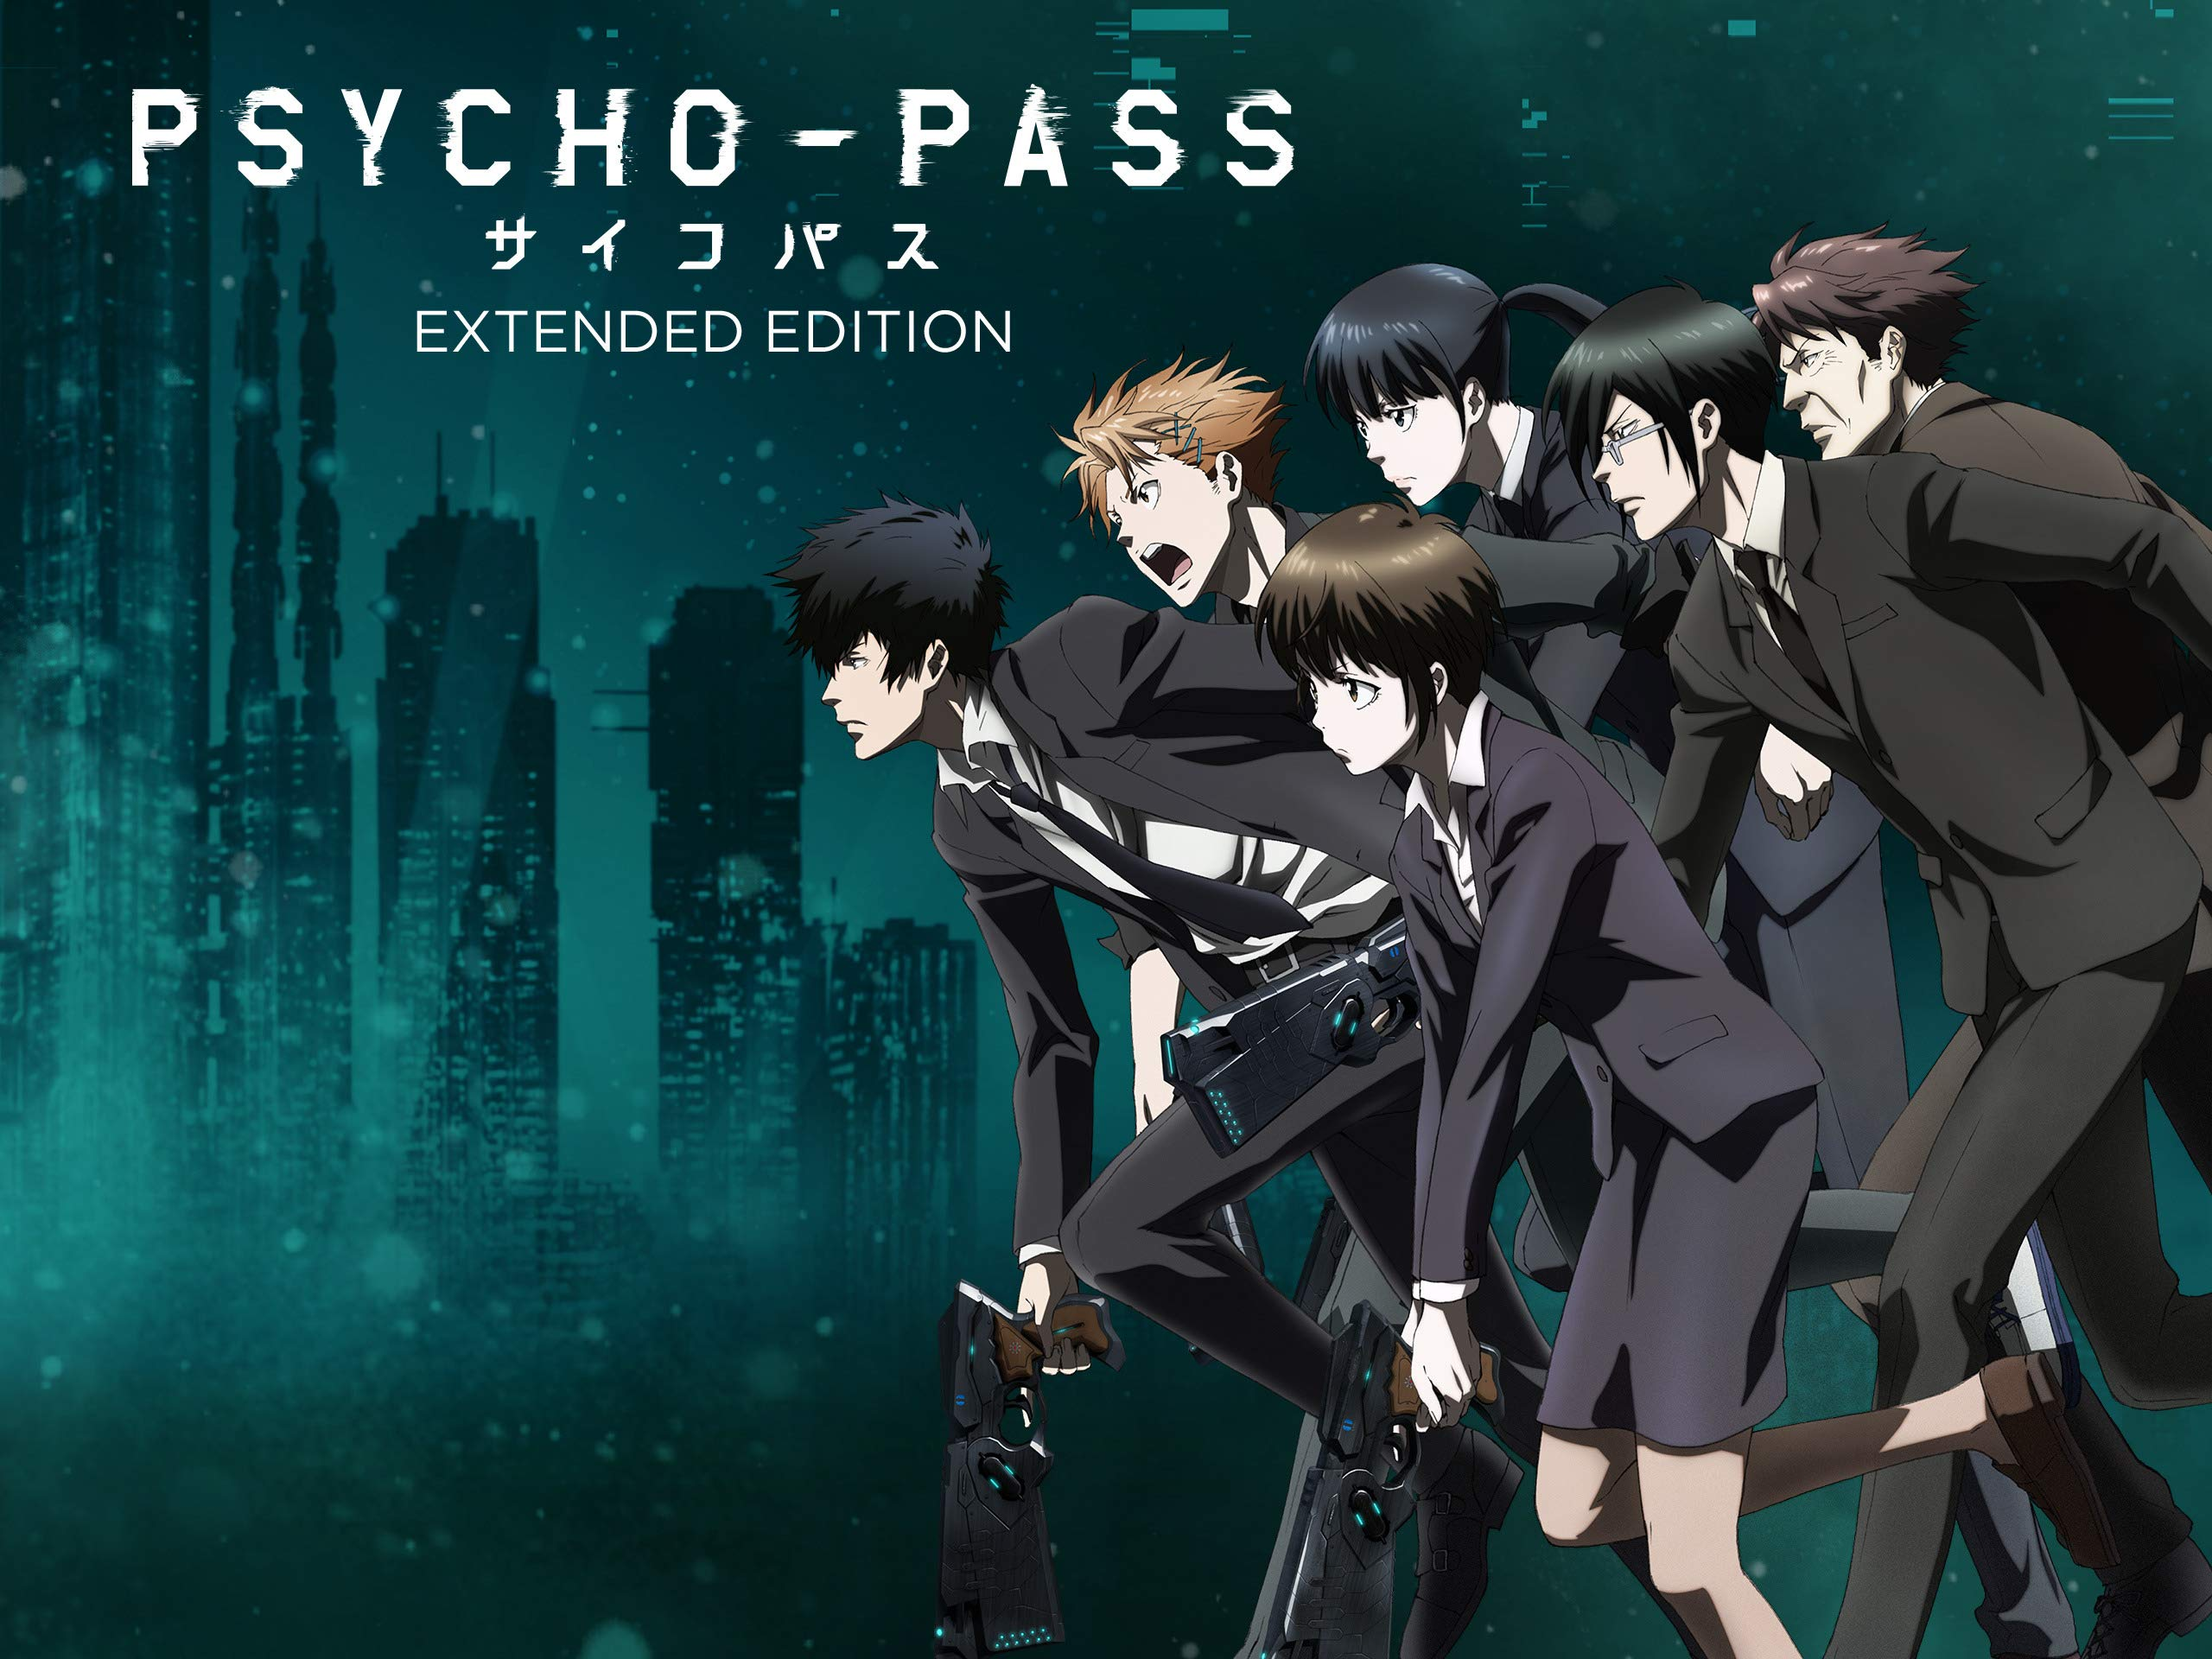 Watch Psycho Pass Extended Edition Prime Video